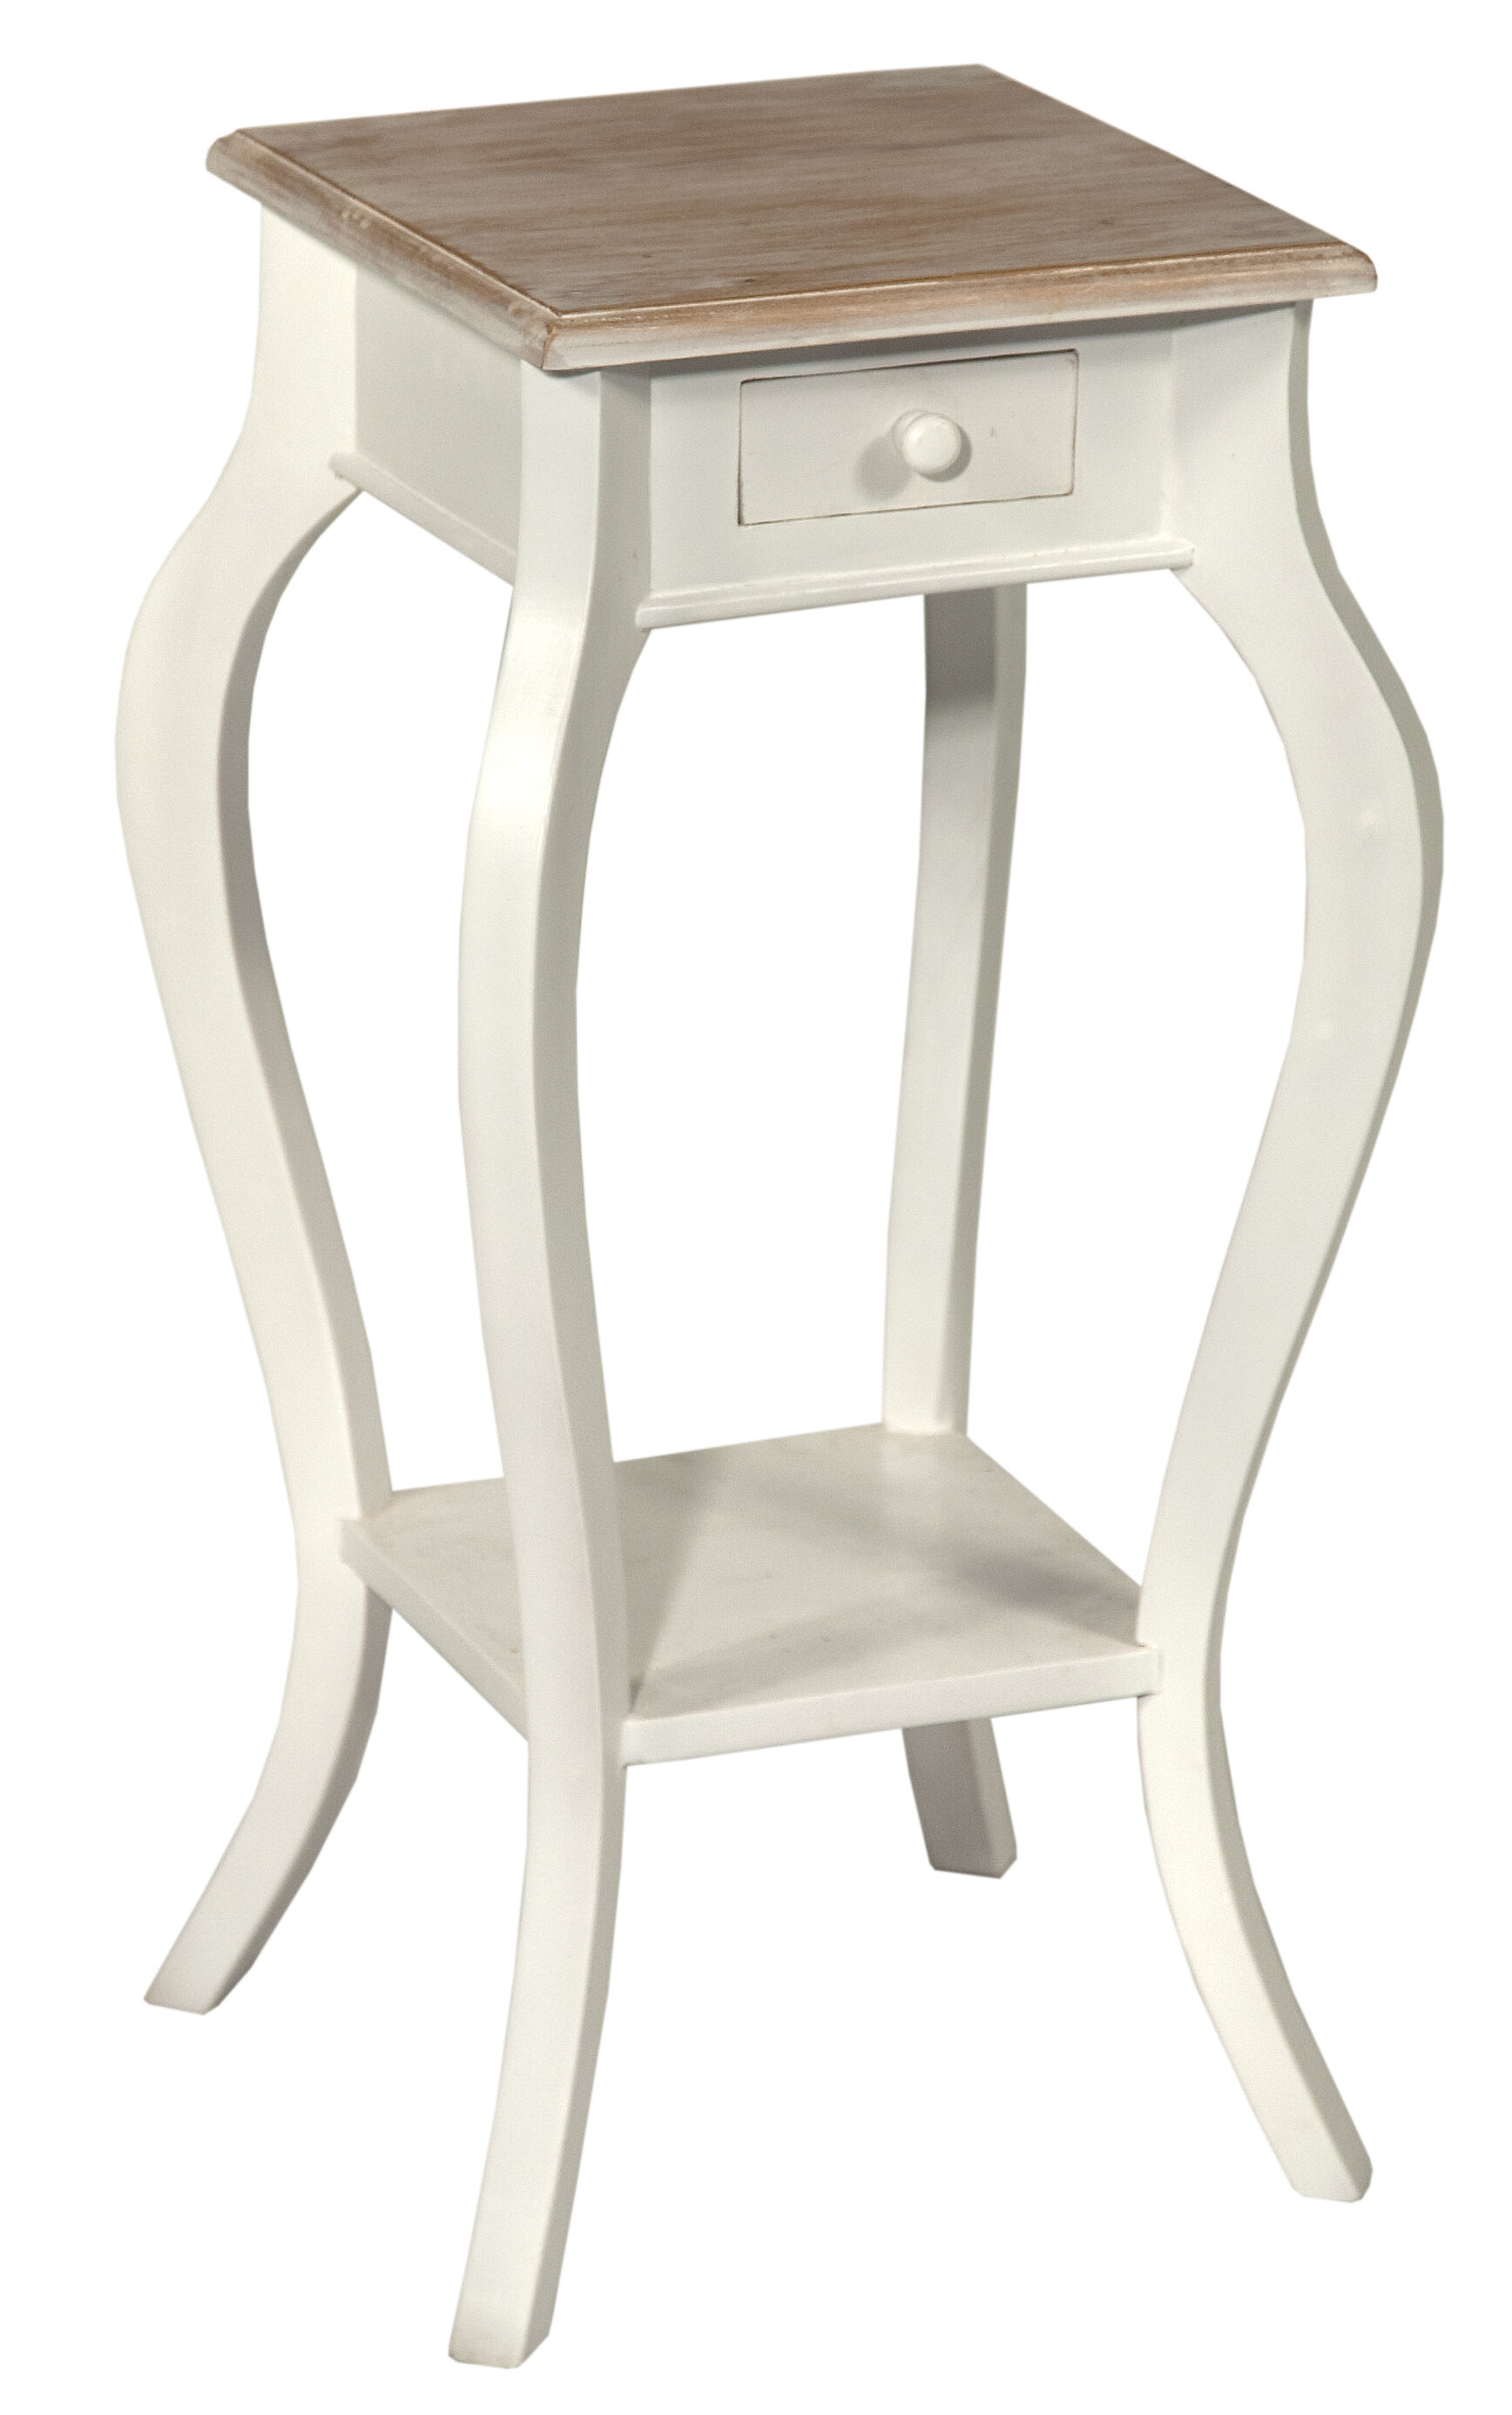 Lily Manor Janessa Side Table Wayfair Co Uk